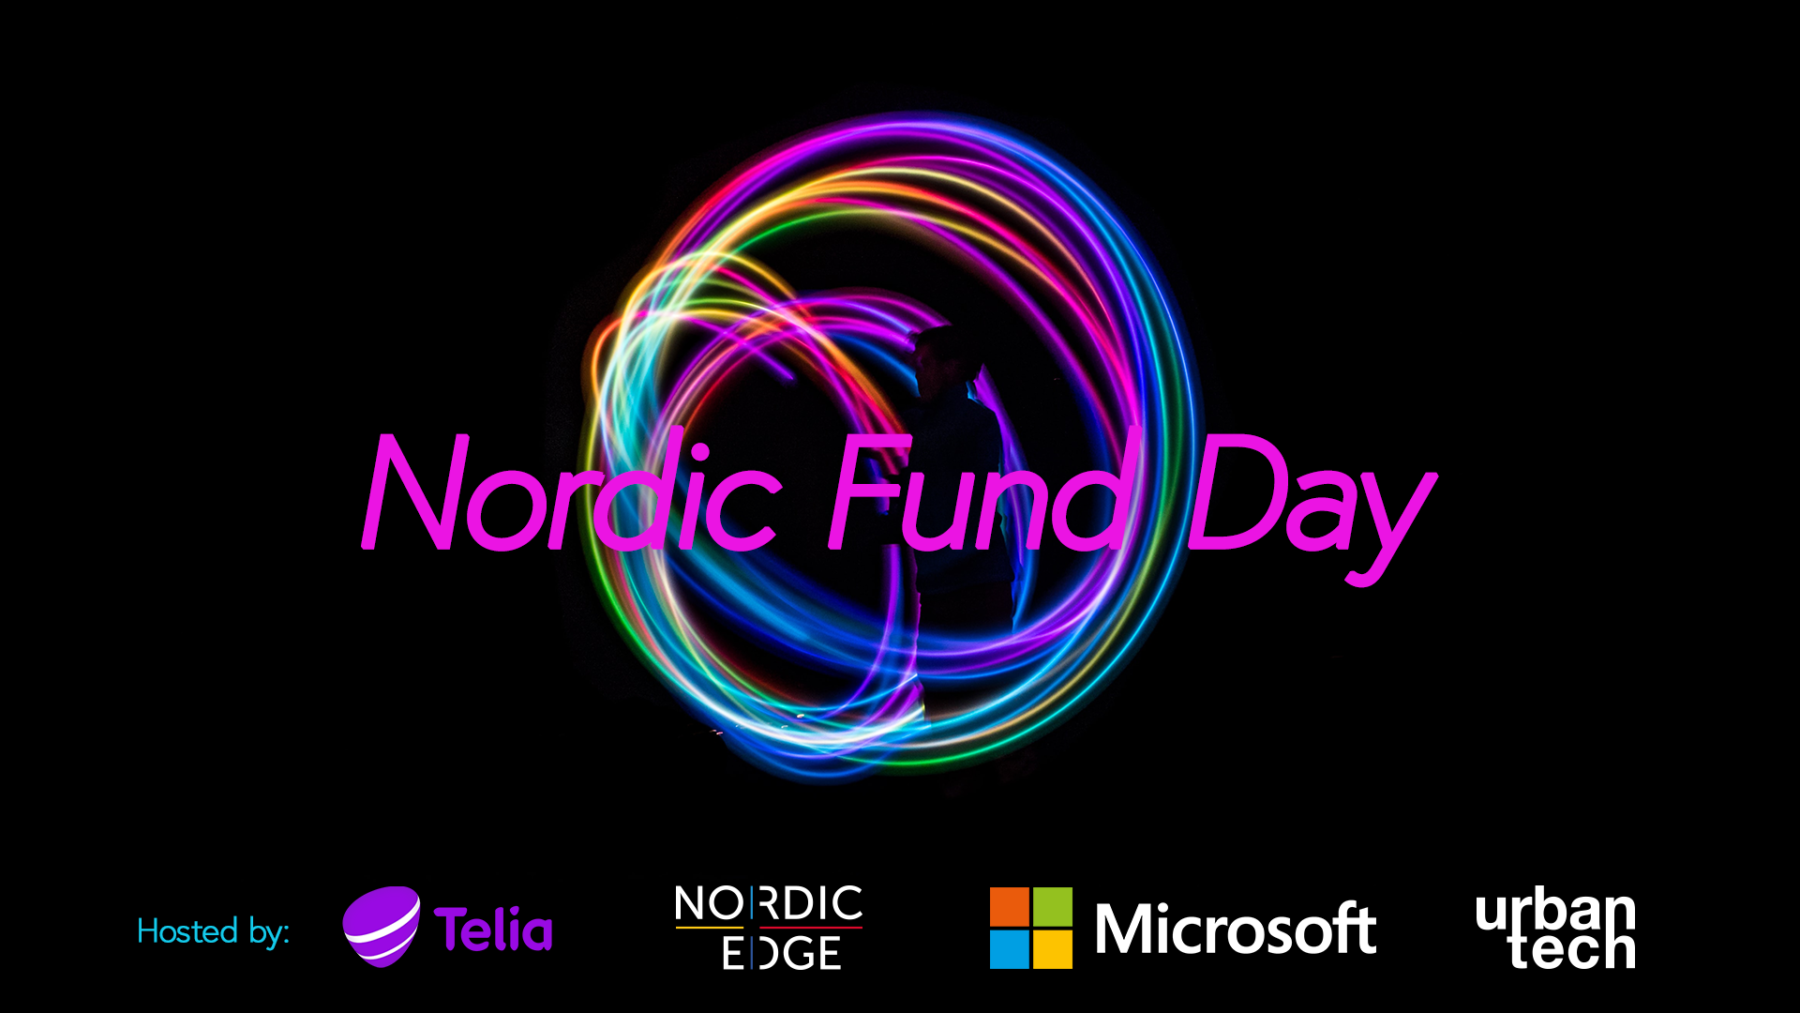 A pan-Nordic programme to connect start-ups and investors